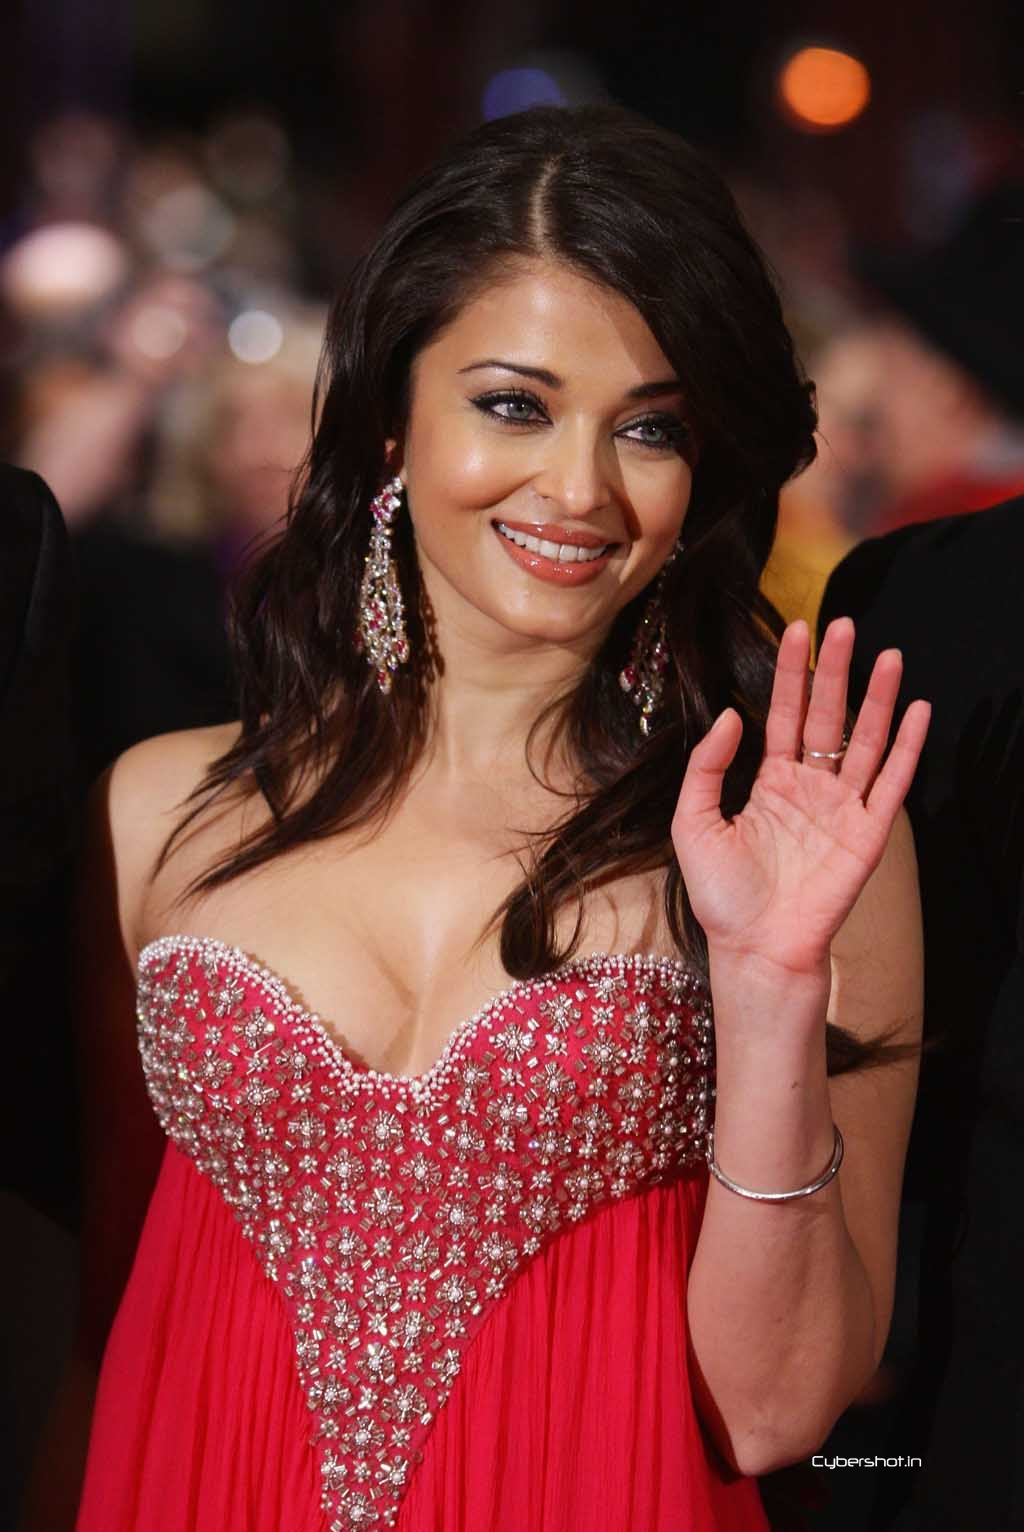 Aishwarya Rai Amitabh Bachan Hot Video  Celebrity Big -5011